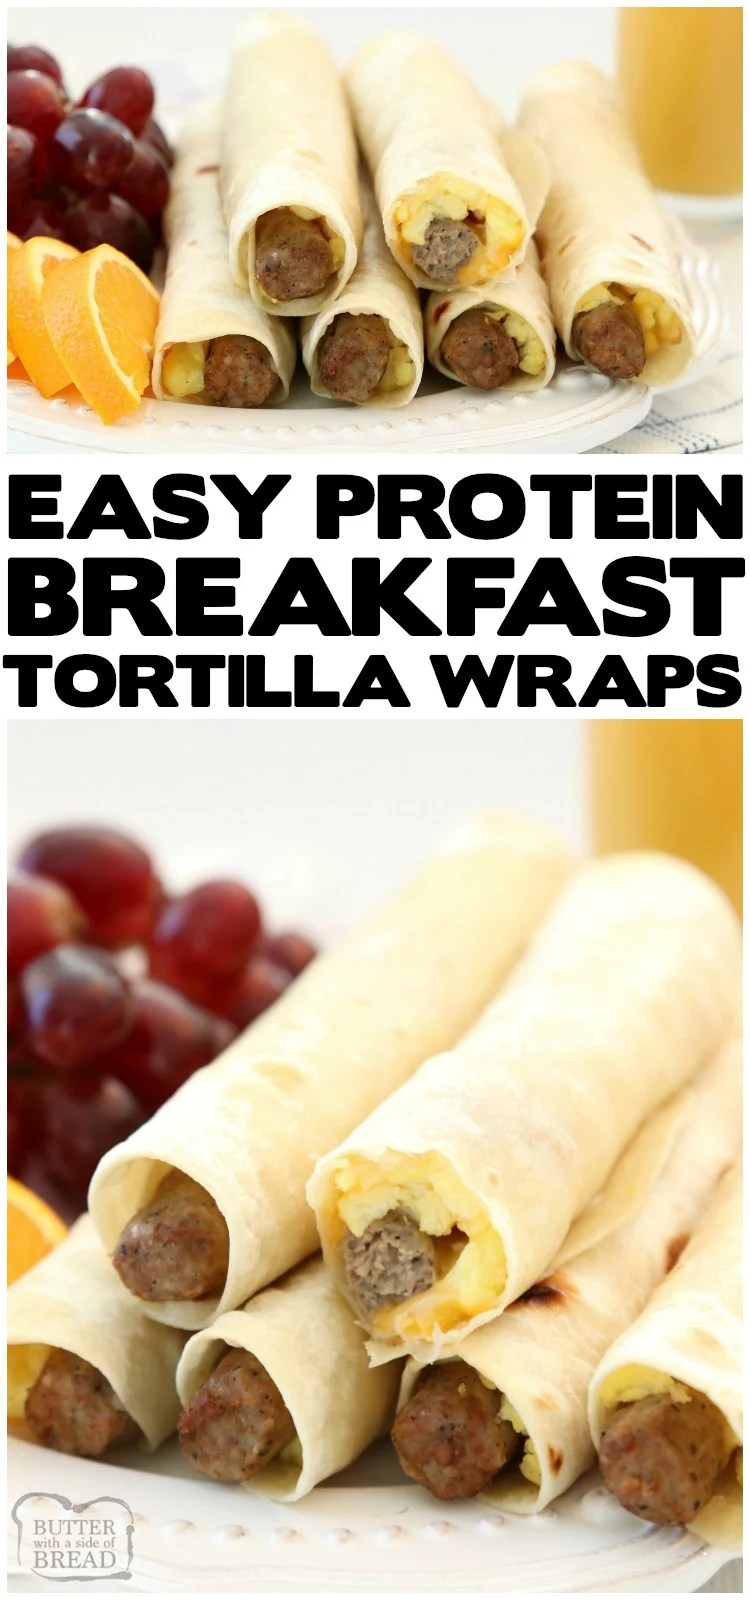 High Protein Breakfast Wraps made with turkey sausage, eggs and cheese wrapped in a fresh tortilla. Easy on the go breakfast that's delicious and & satisfying for everyone! #breakfast #protein #highprotein #eggs #sausage #cheese #food #cooking #freezer #recipe from BUTTER WITH A SIDE OF BREAD